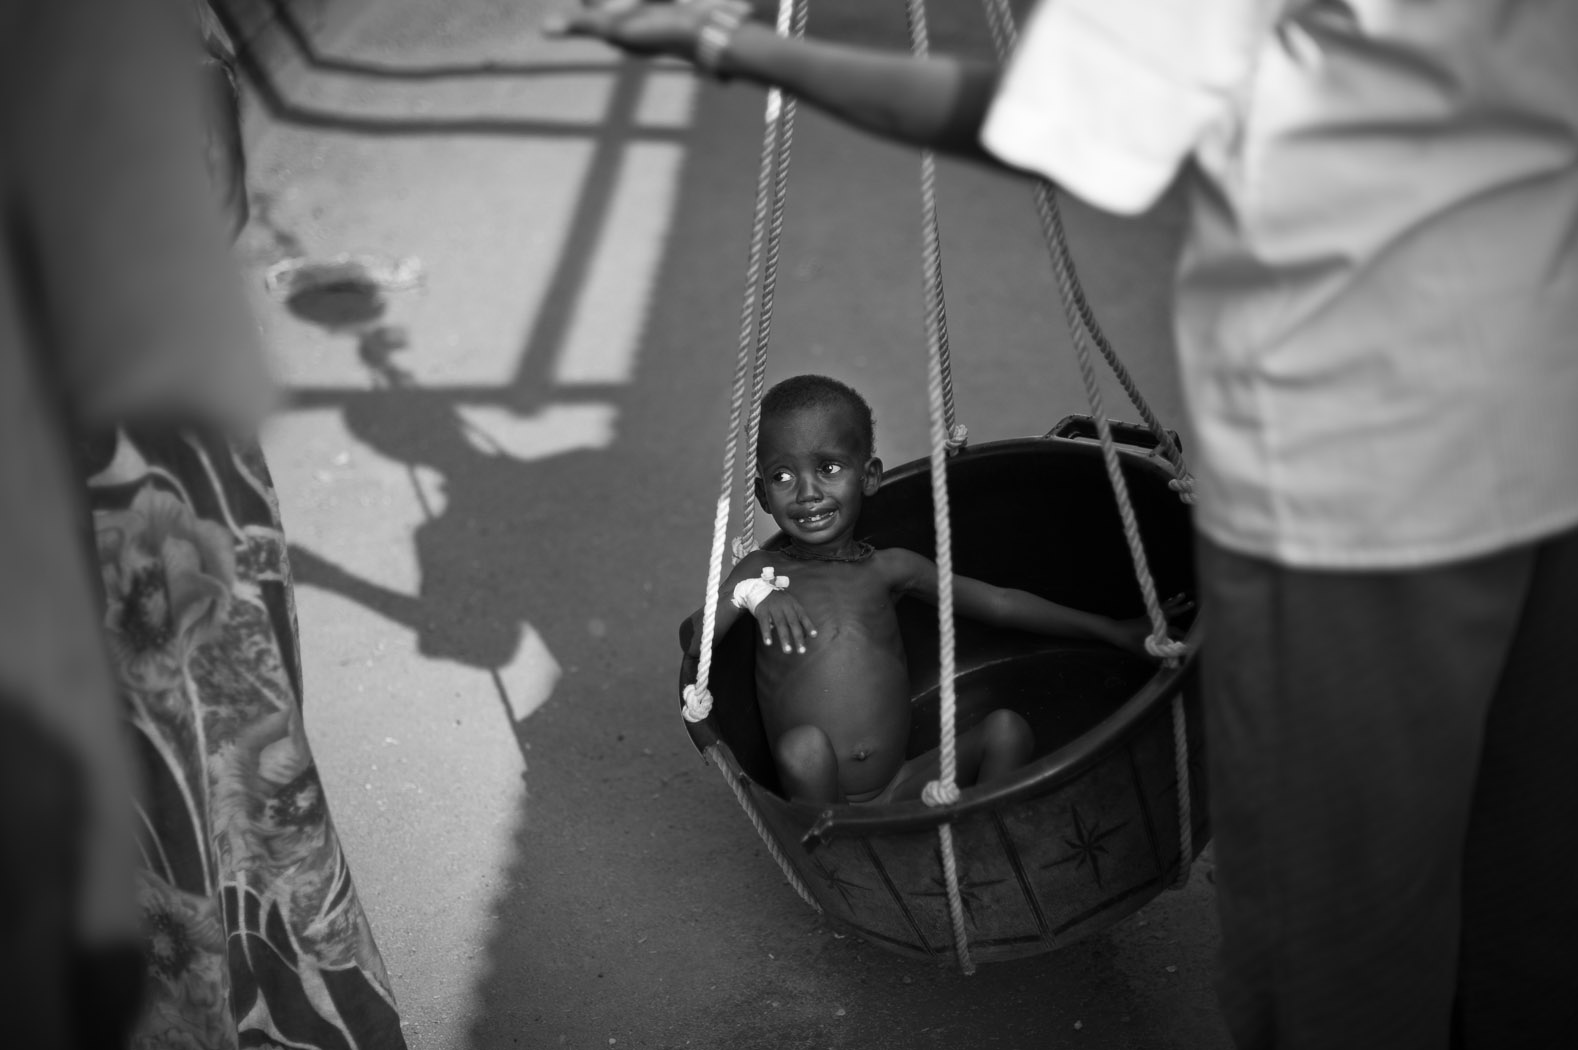 A Somali child suffering from acute malnutrition is weighed at the Médicins Sans Frontières (MSF) hospital in Dagahaley refugee camp. MSF is currently treating over 7000 children for malnutrition in Dagahaley alone.